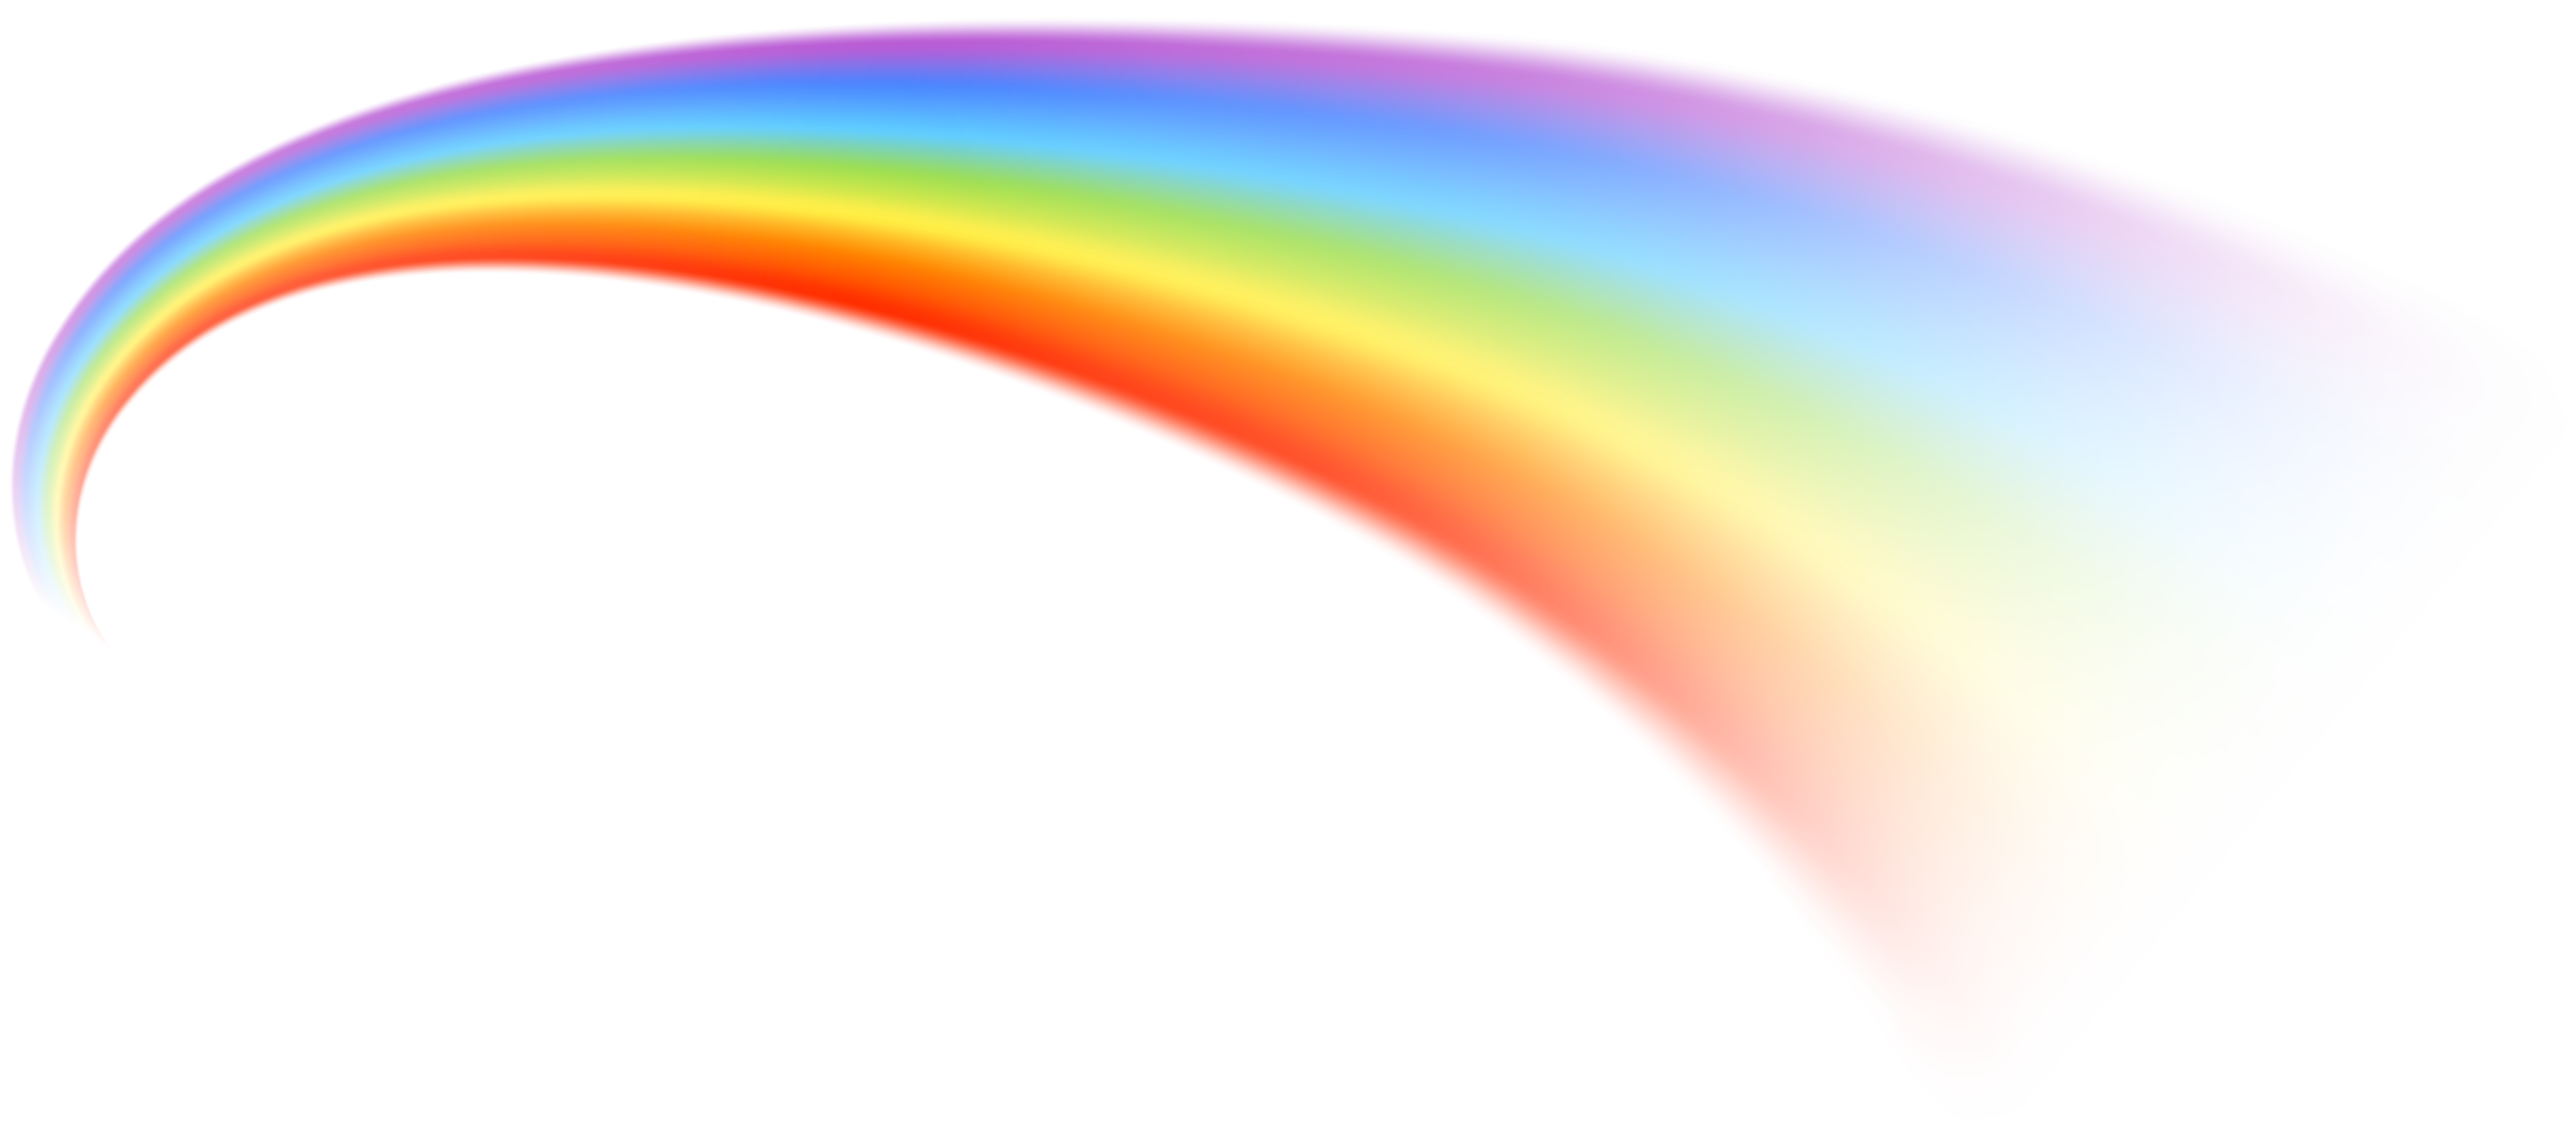 Rainbow png. Transparent image gallery yopriceville